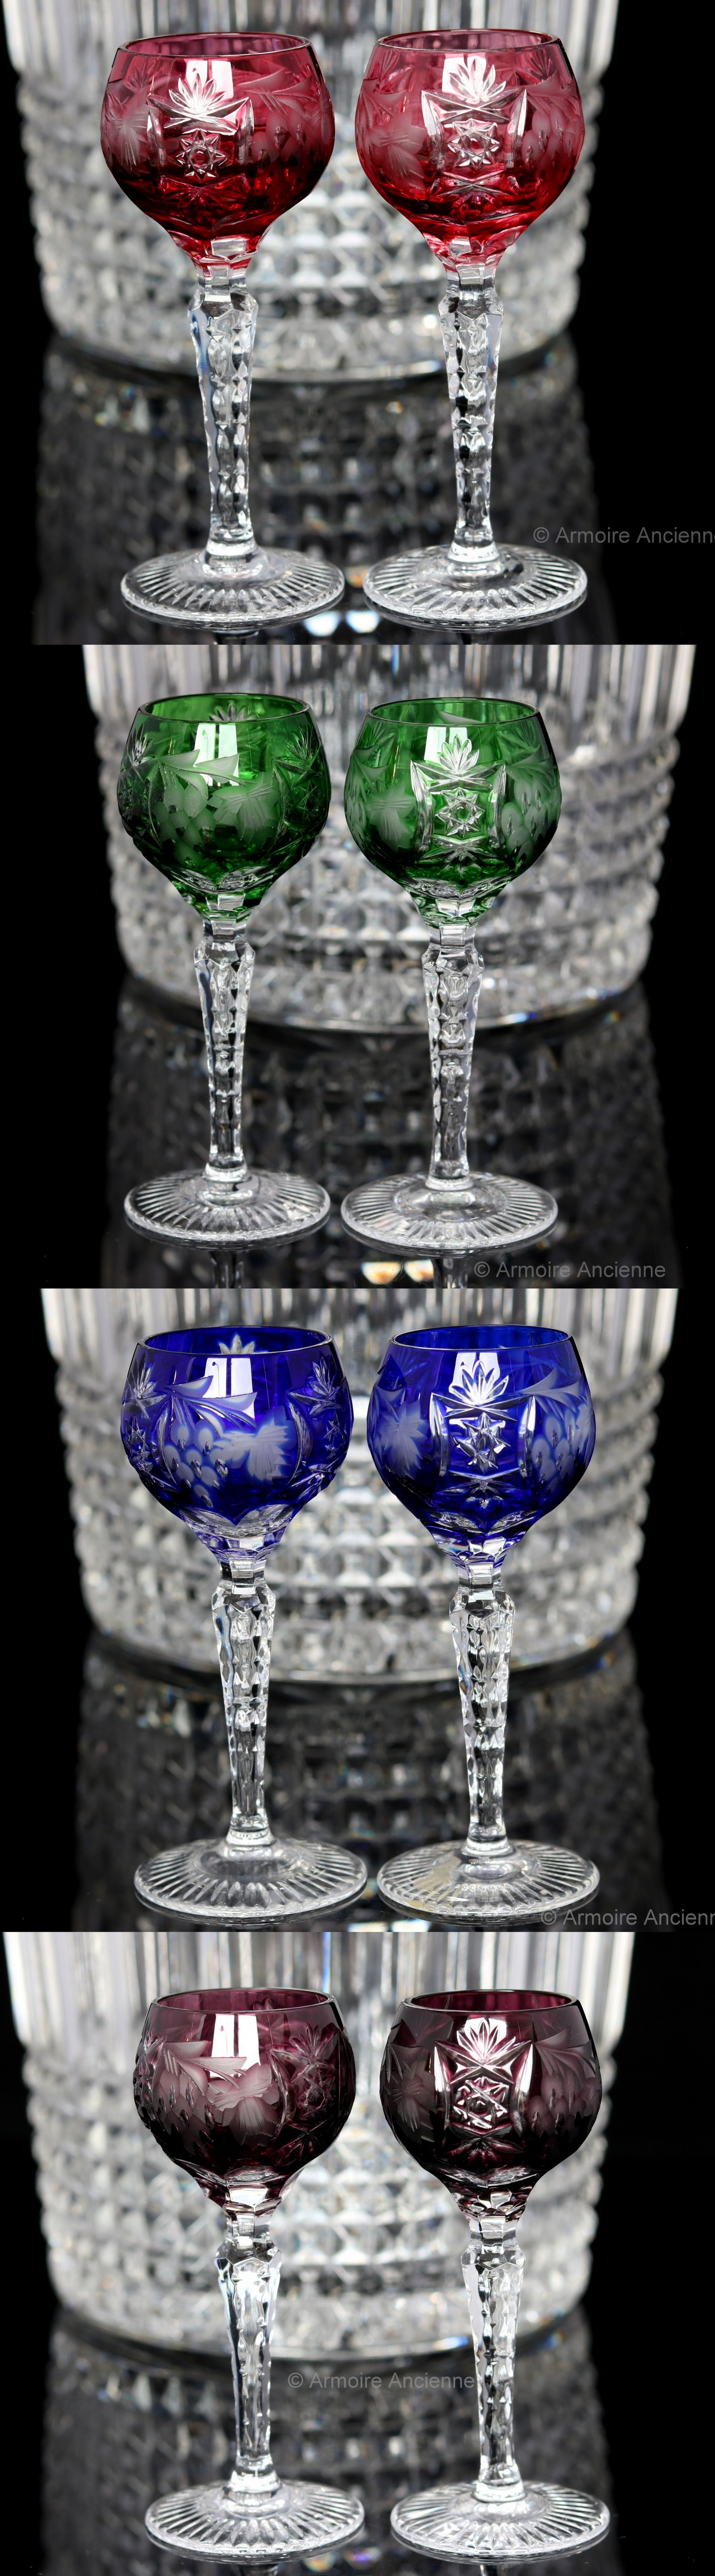 BUY on ETSY: Cobalt Blue Cut Crystal Liquor Glasses, Cordial Glasses, Grapes Decor, Set of 2